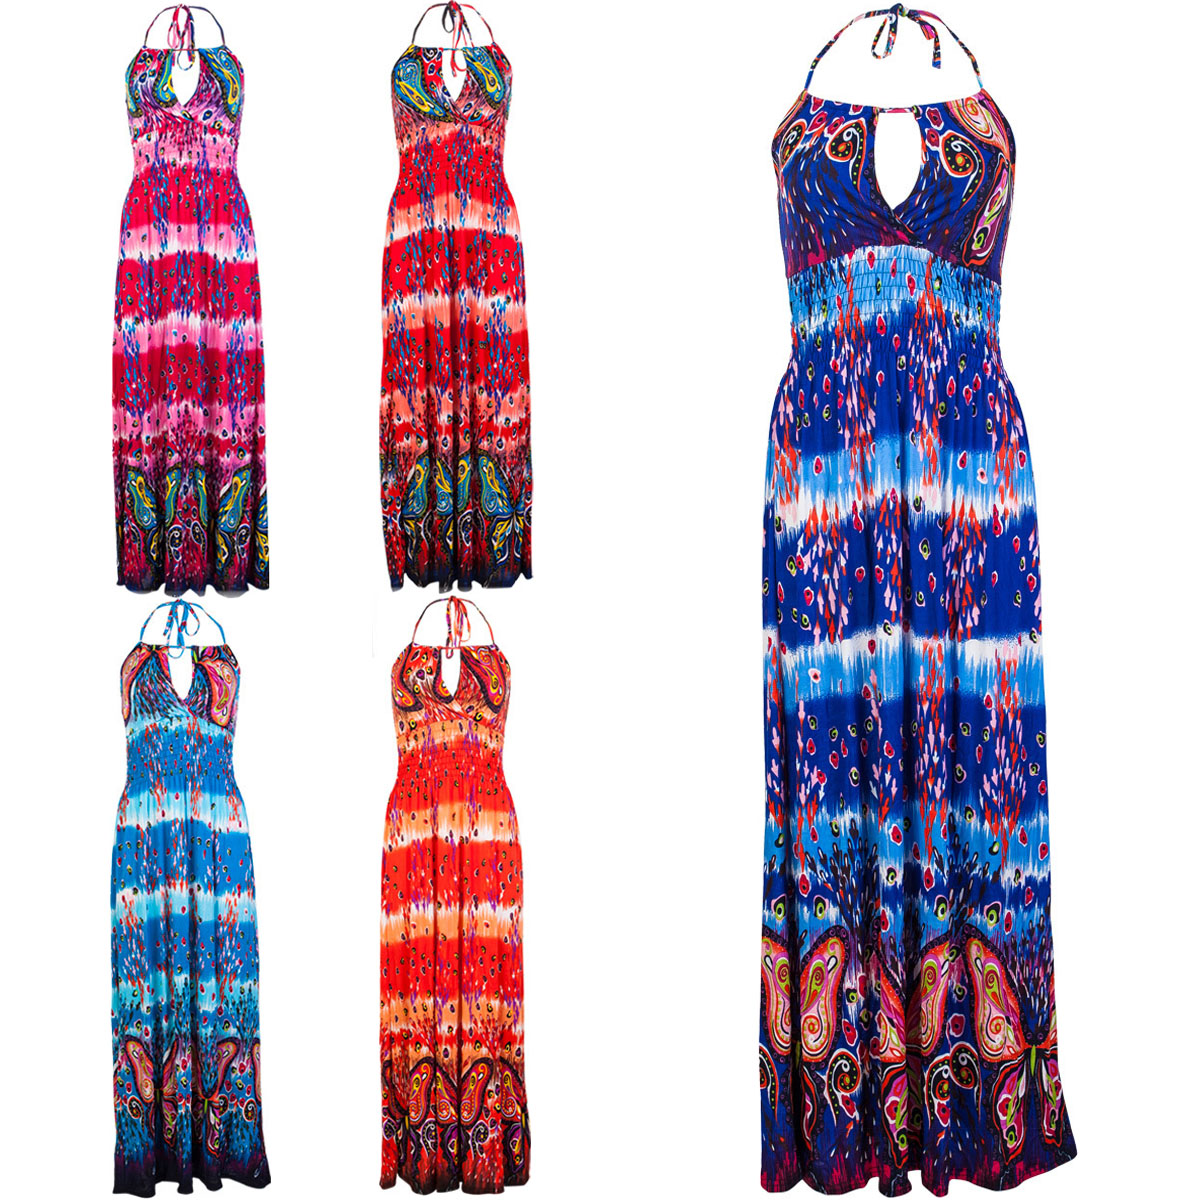 92Q WOMENS PRINTED LADIES HALTERNECK KEYHOLE LONG MAXI SUMMER DRESS SIZE 10-16